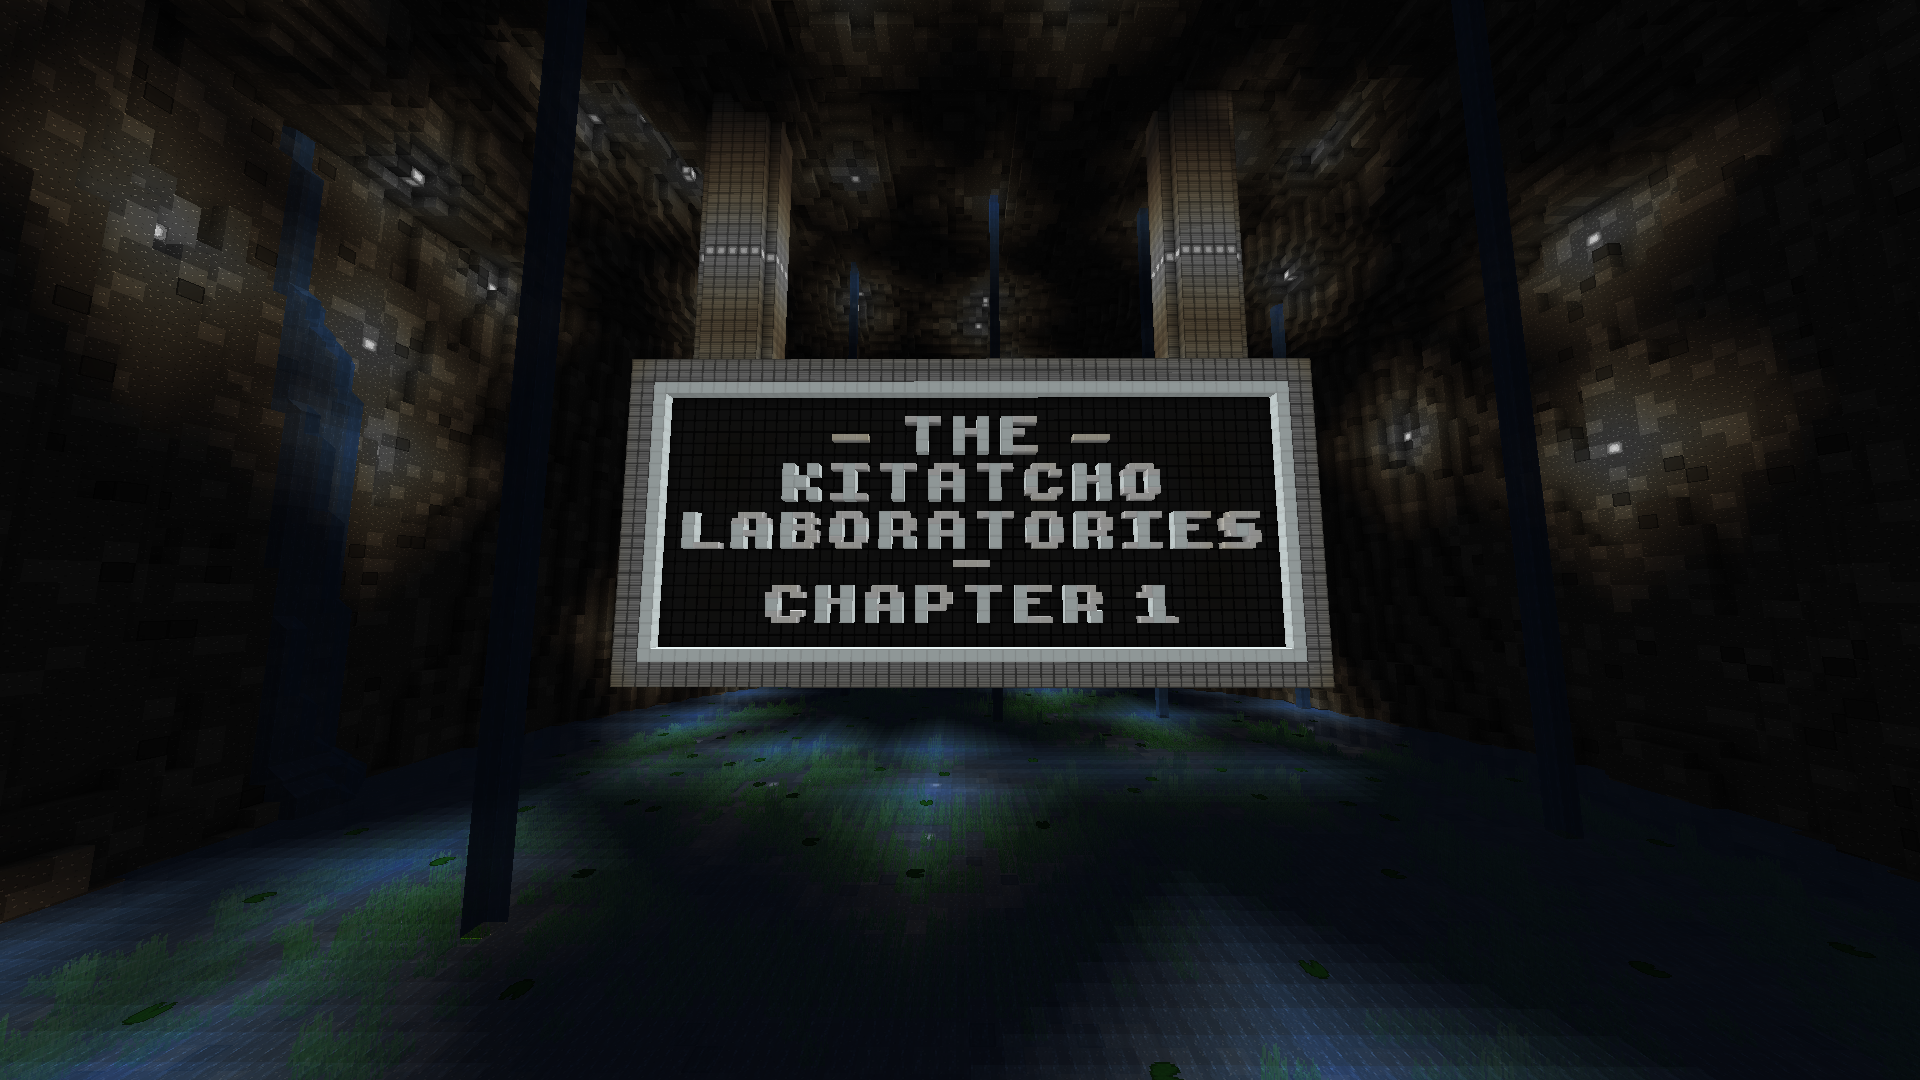 Скачать The Kitatcho Laboratories - Chapter 1 (Reboot) для Minecraft 1.16.3